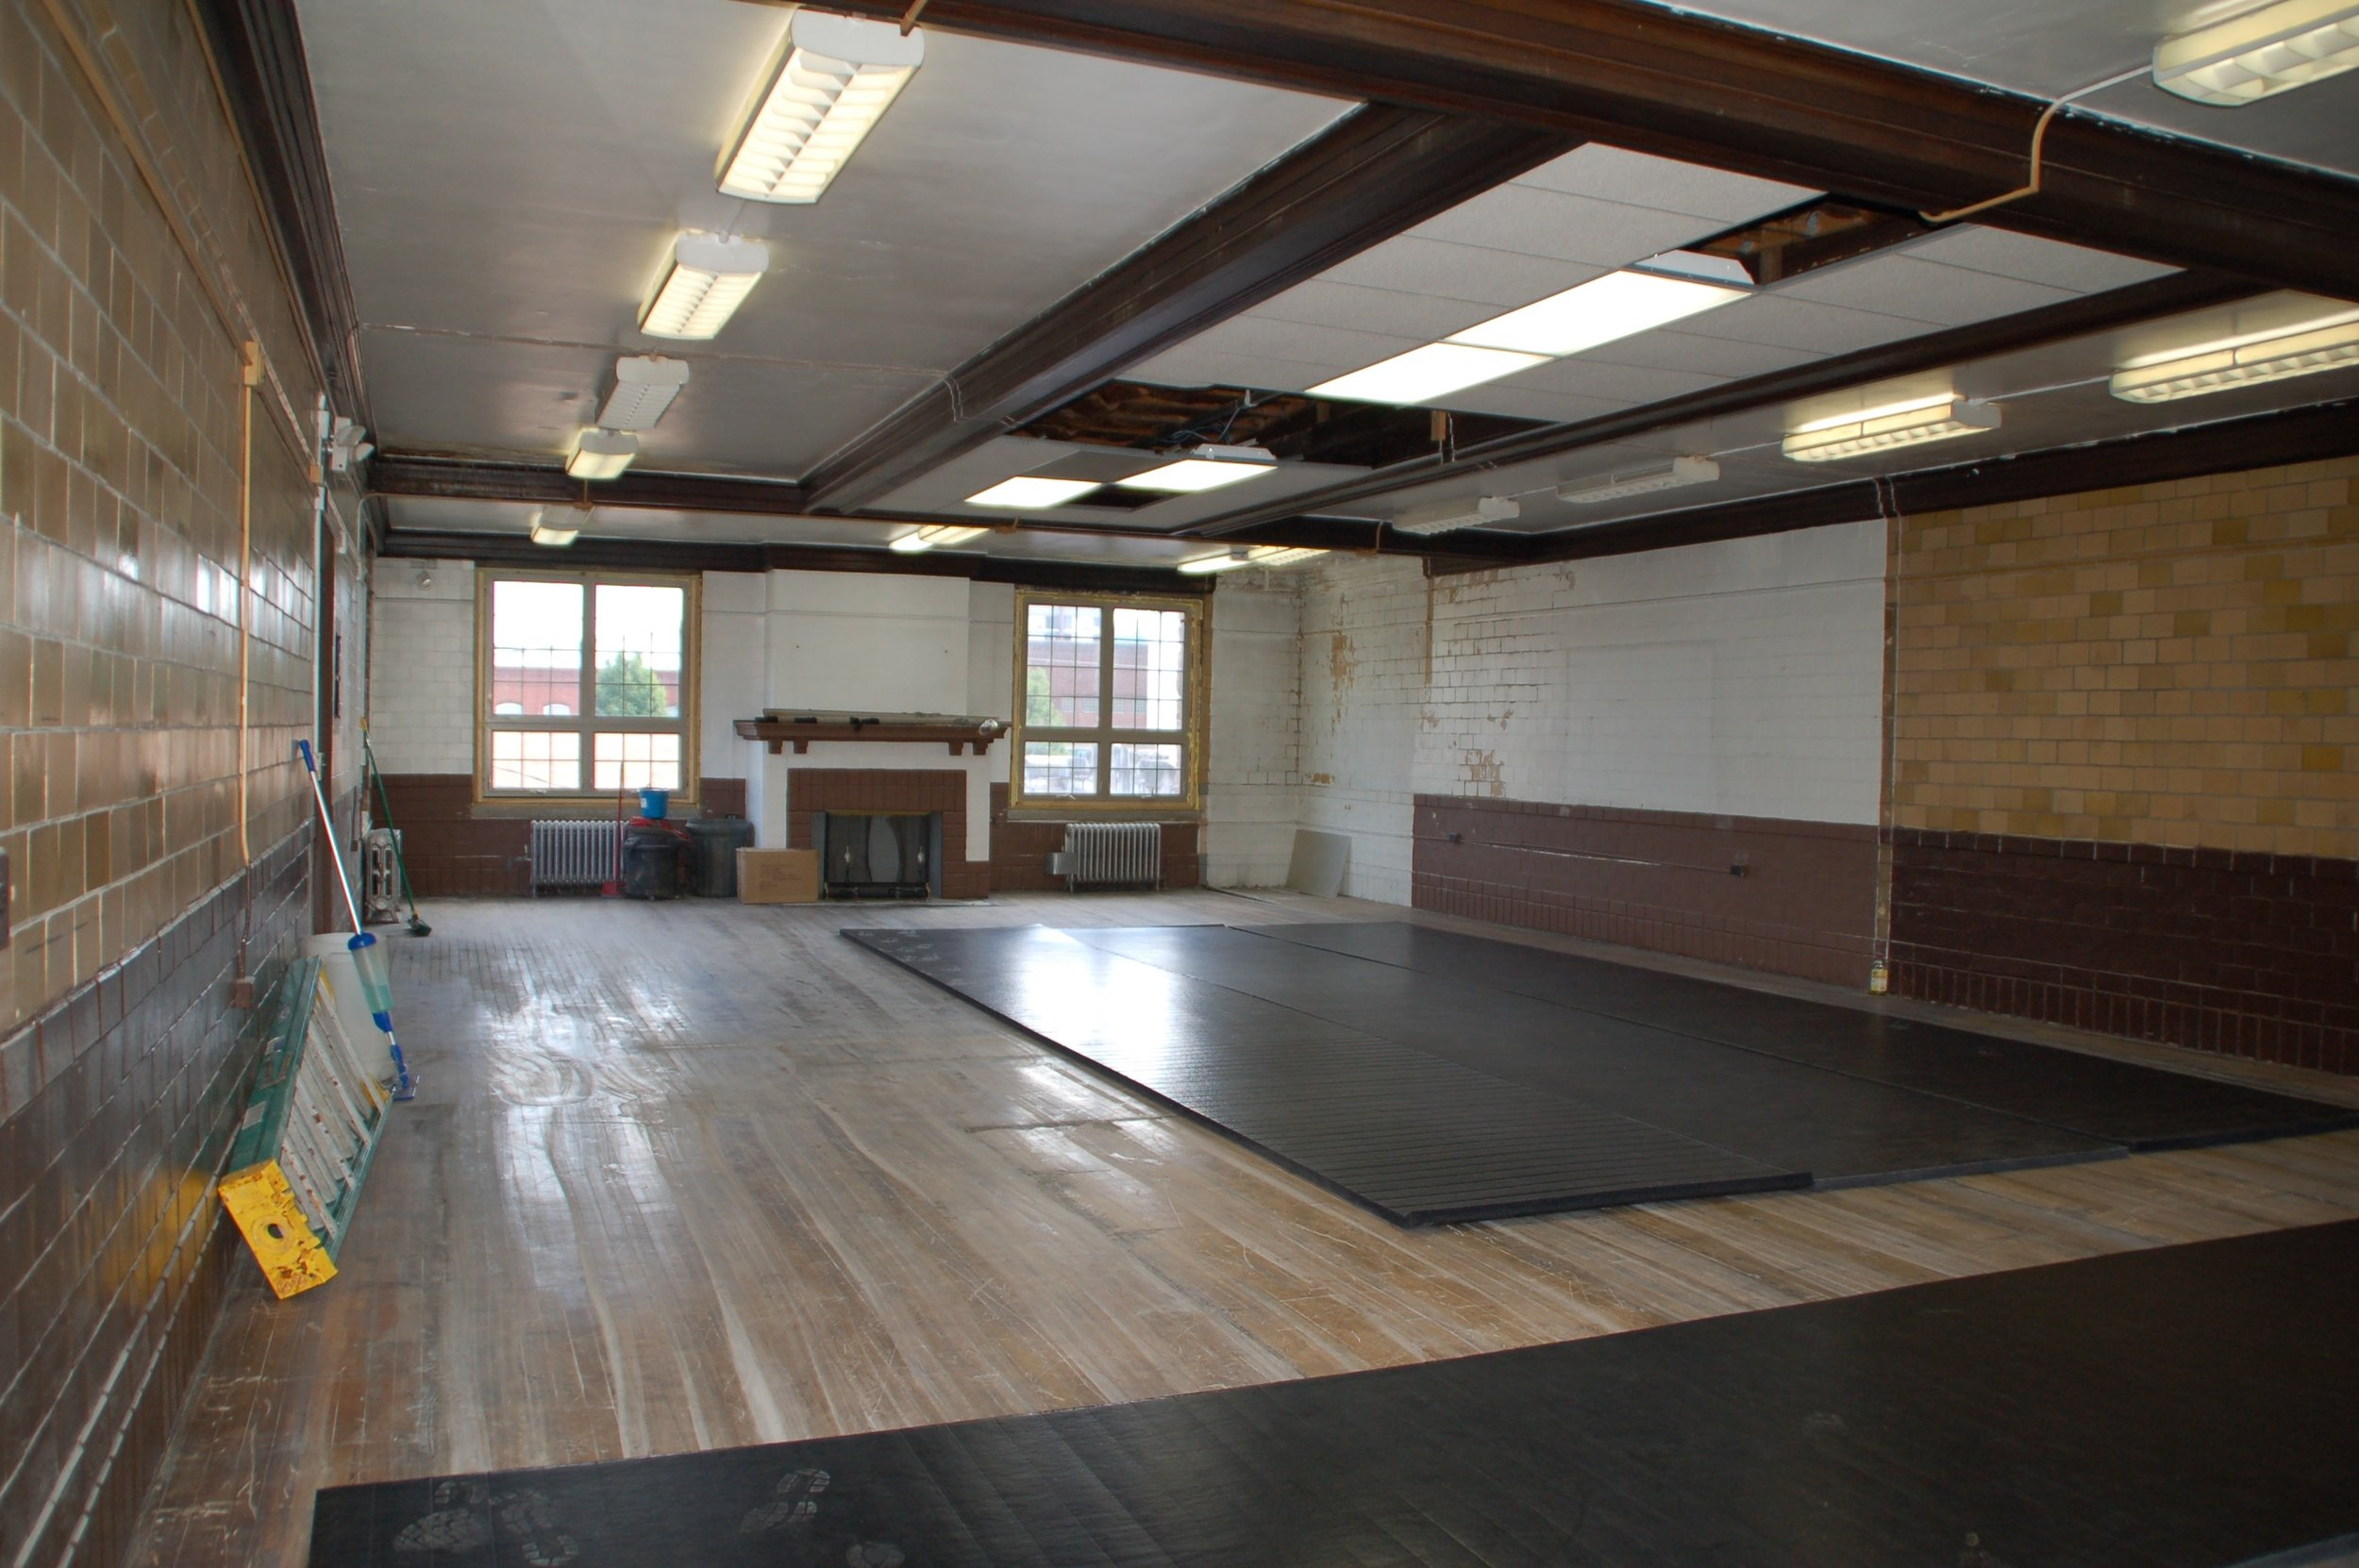 View of the 2nd floor room. We envision this as a rec room/studio and a space for larger gatherings/meetings. The beams and fireplace in this room are gorgeous and we intend to restore them to their original beauty.